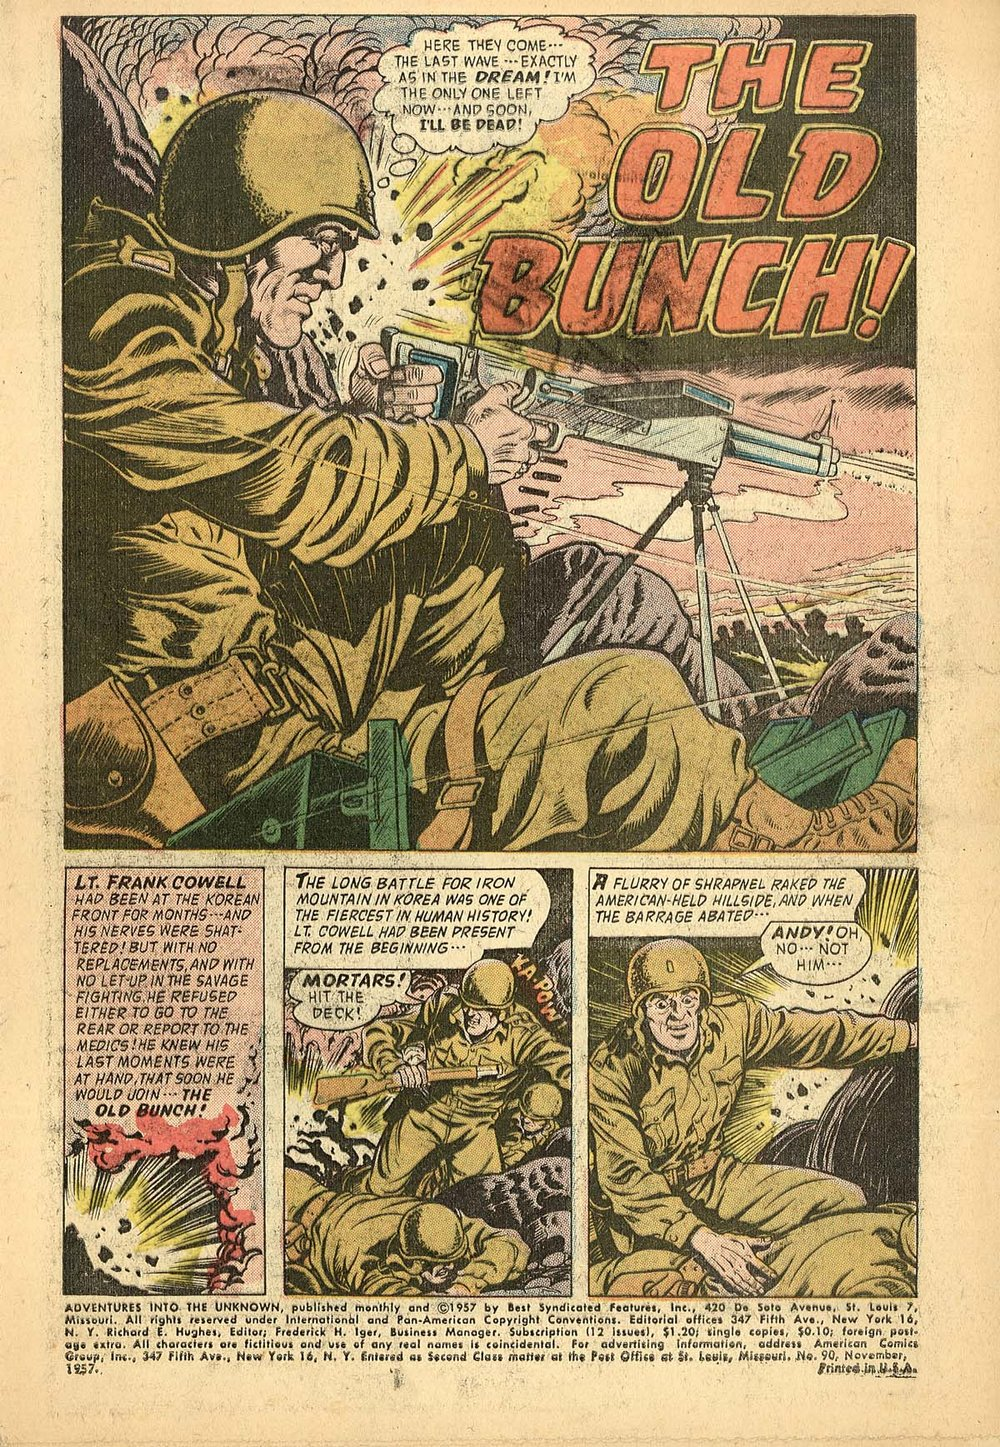 Adventures Into the Unknown (1948) #90 pg.1, art by Hy Eisman.